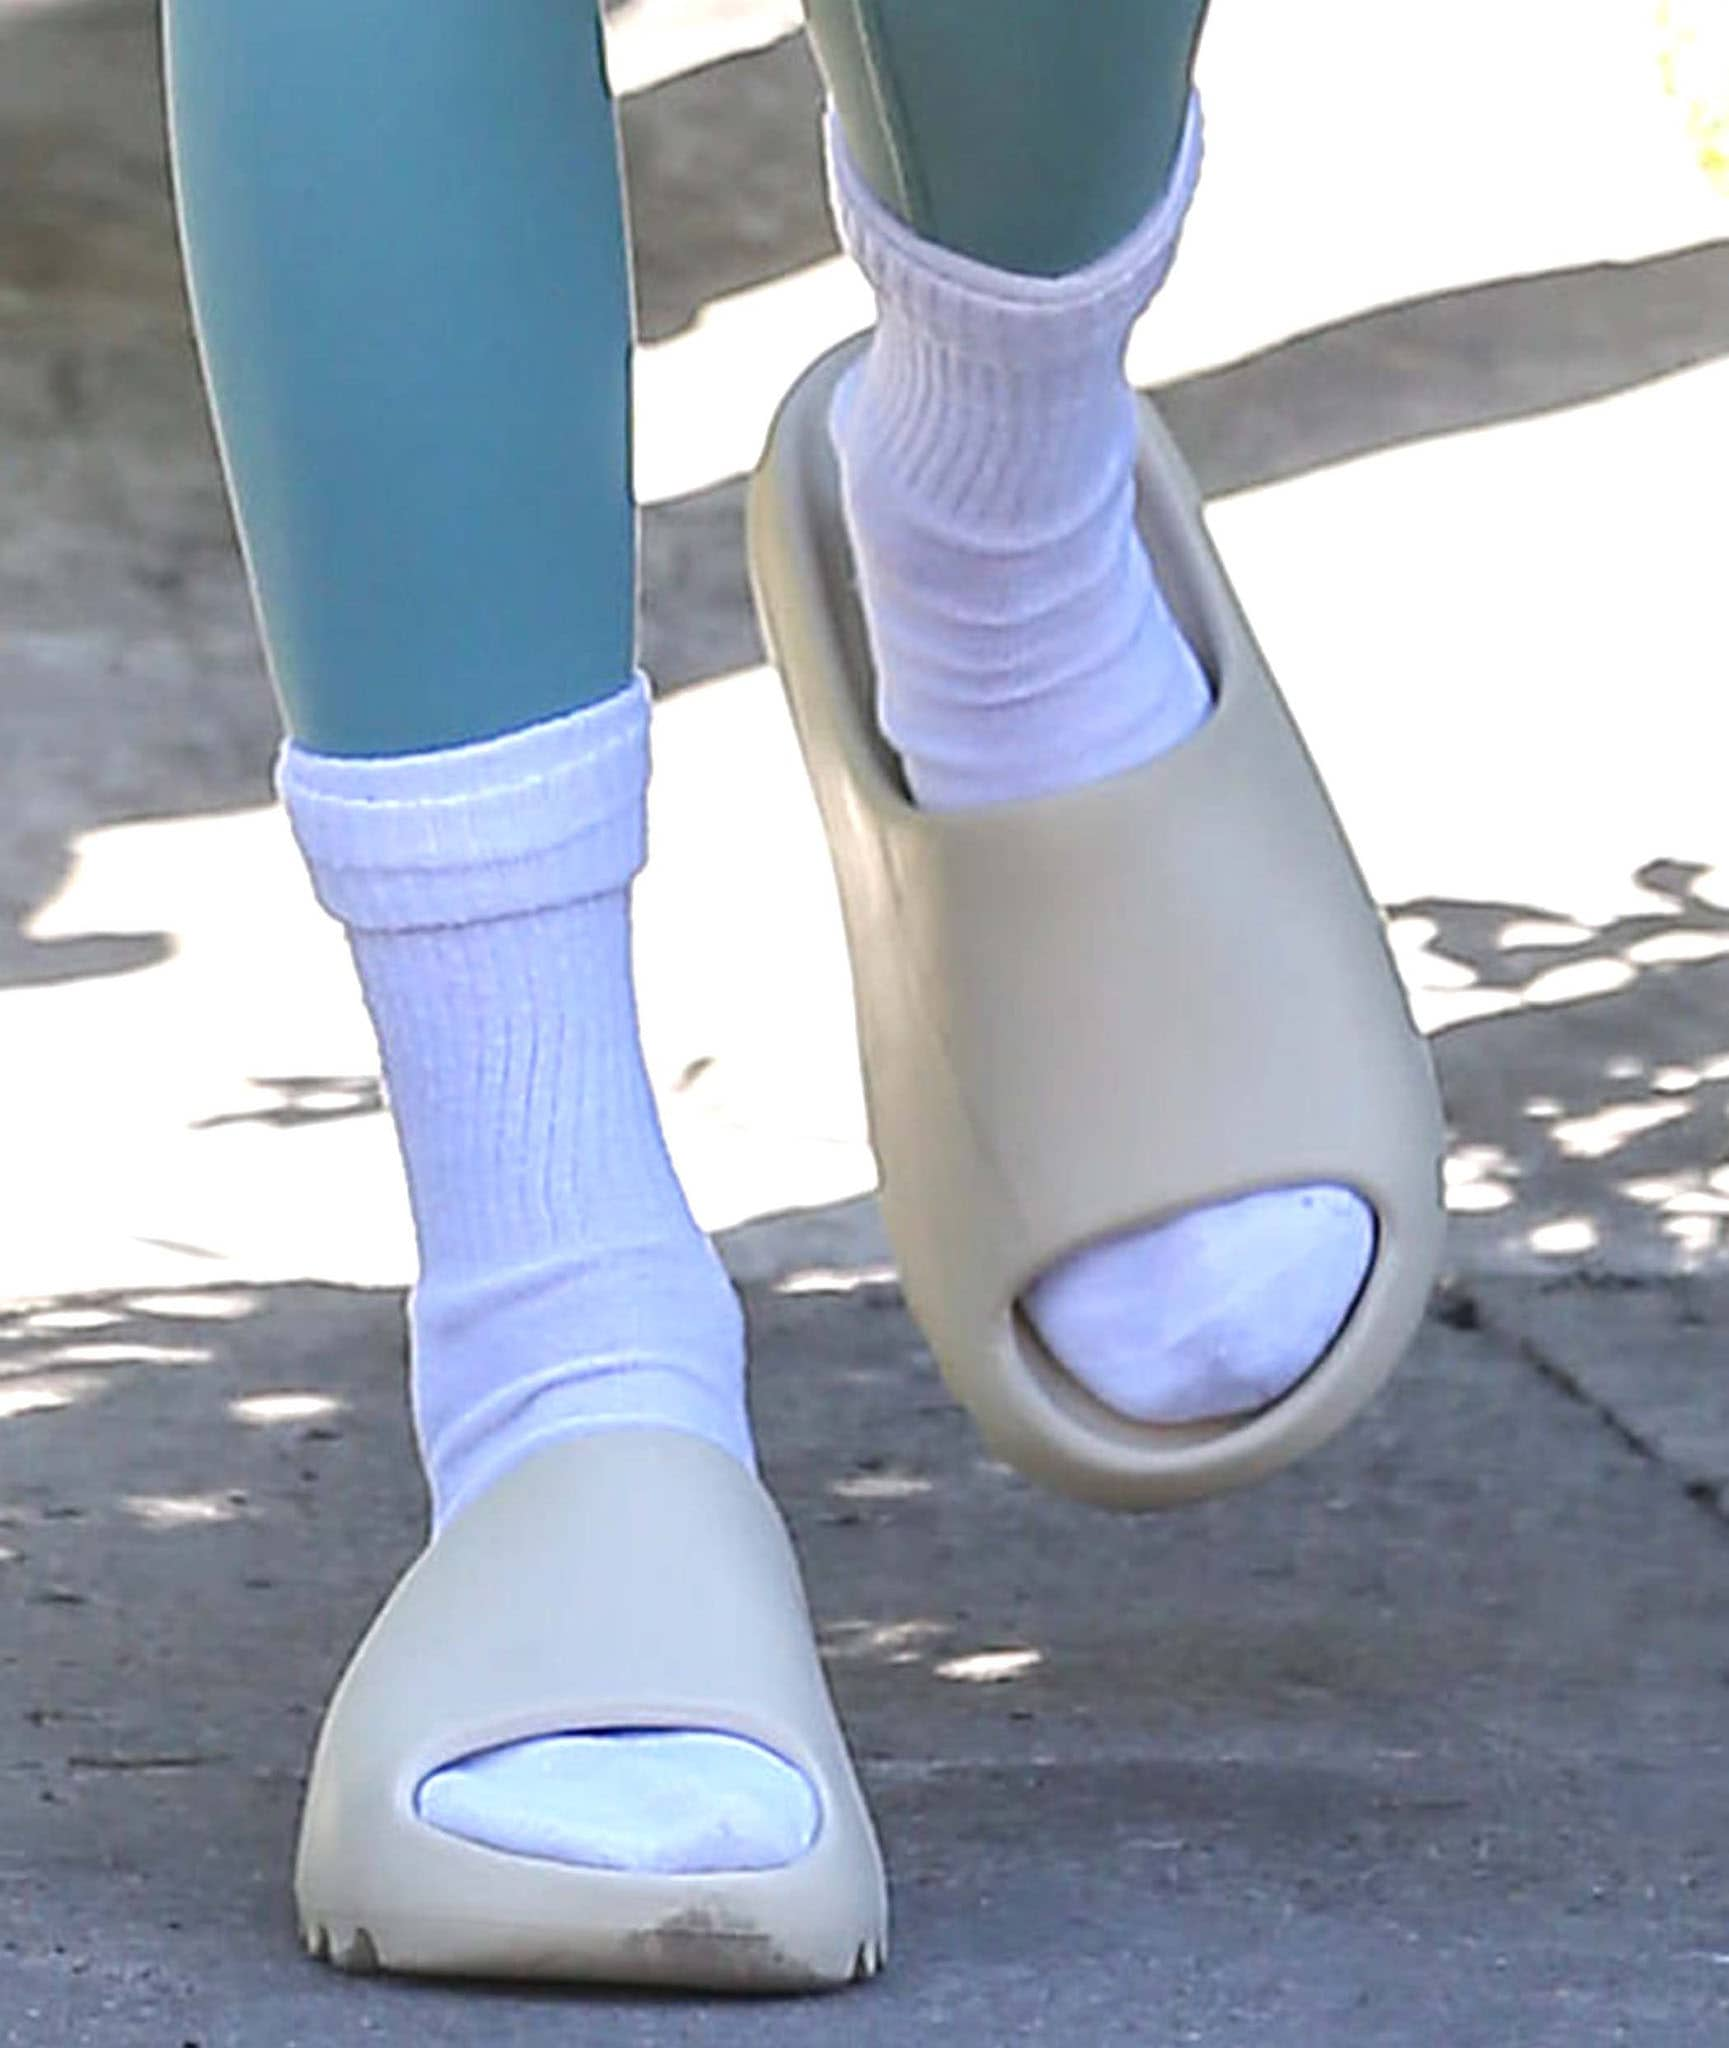 Kendall Jenner wears white socks with Yeezy slides in bone colorway